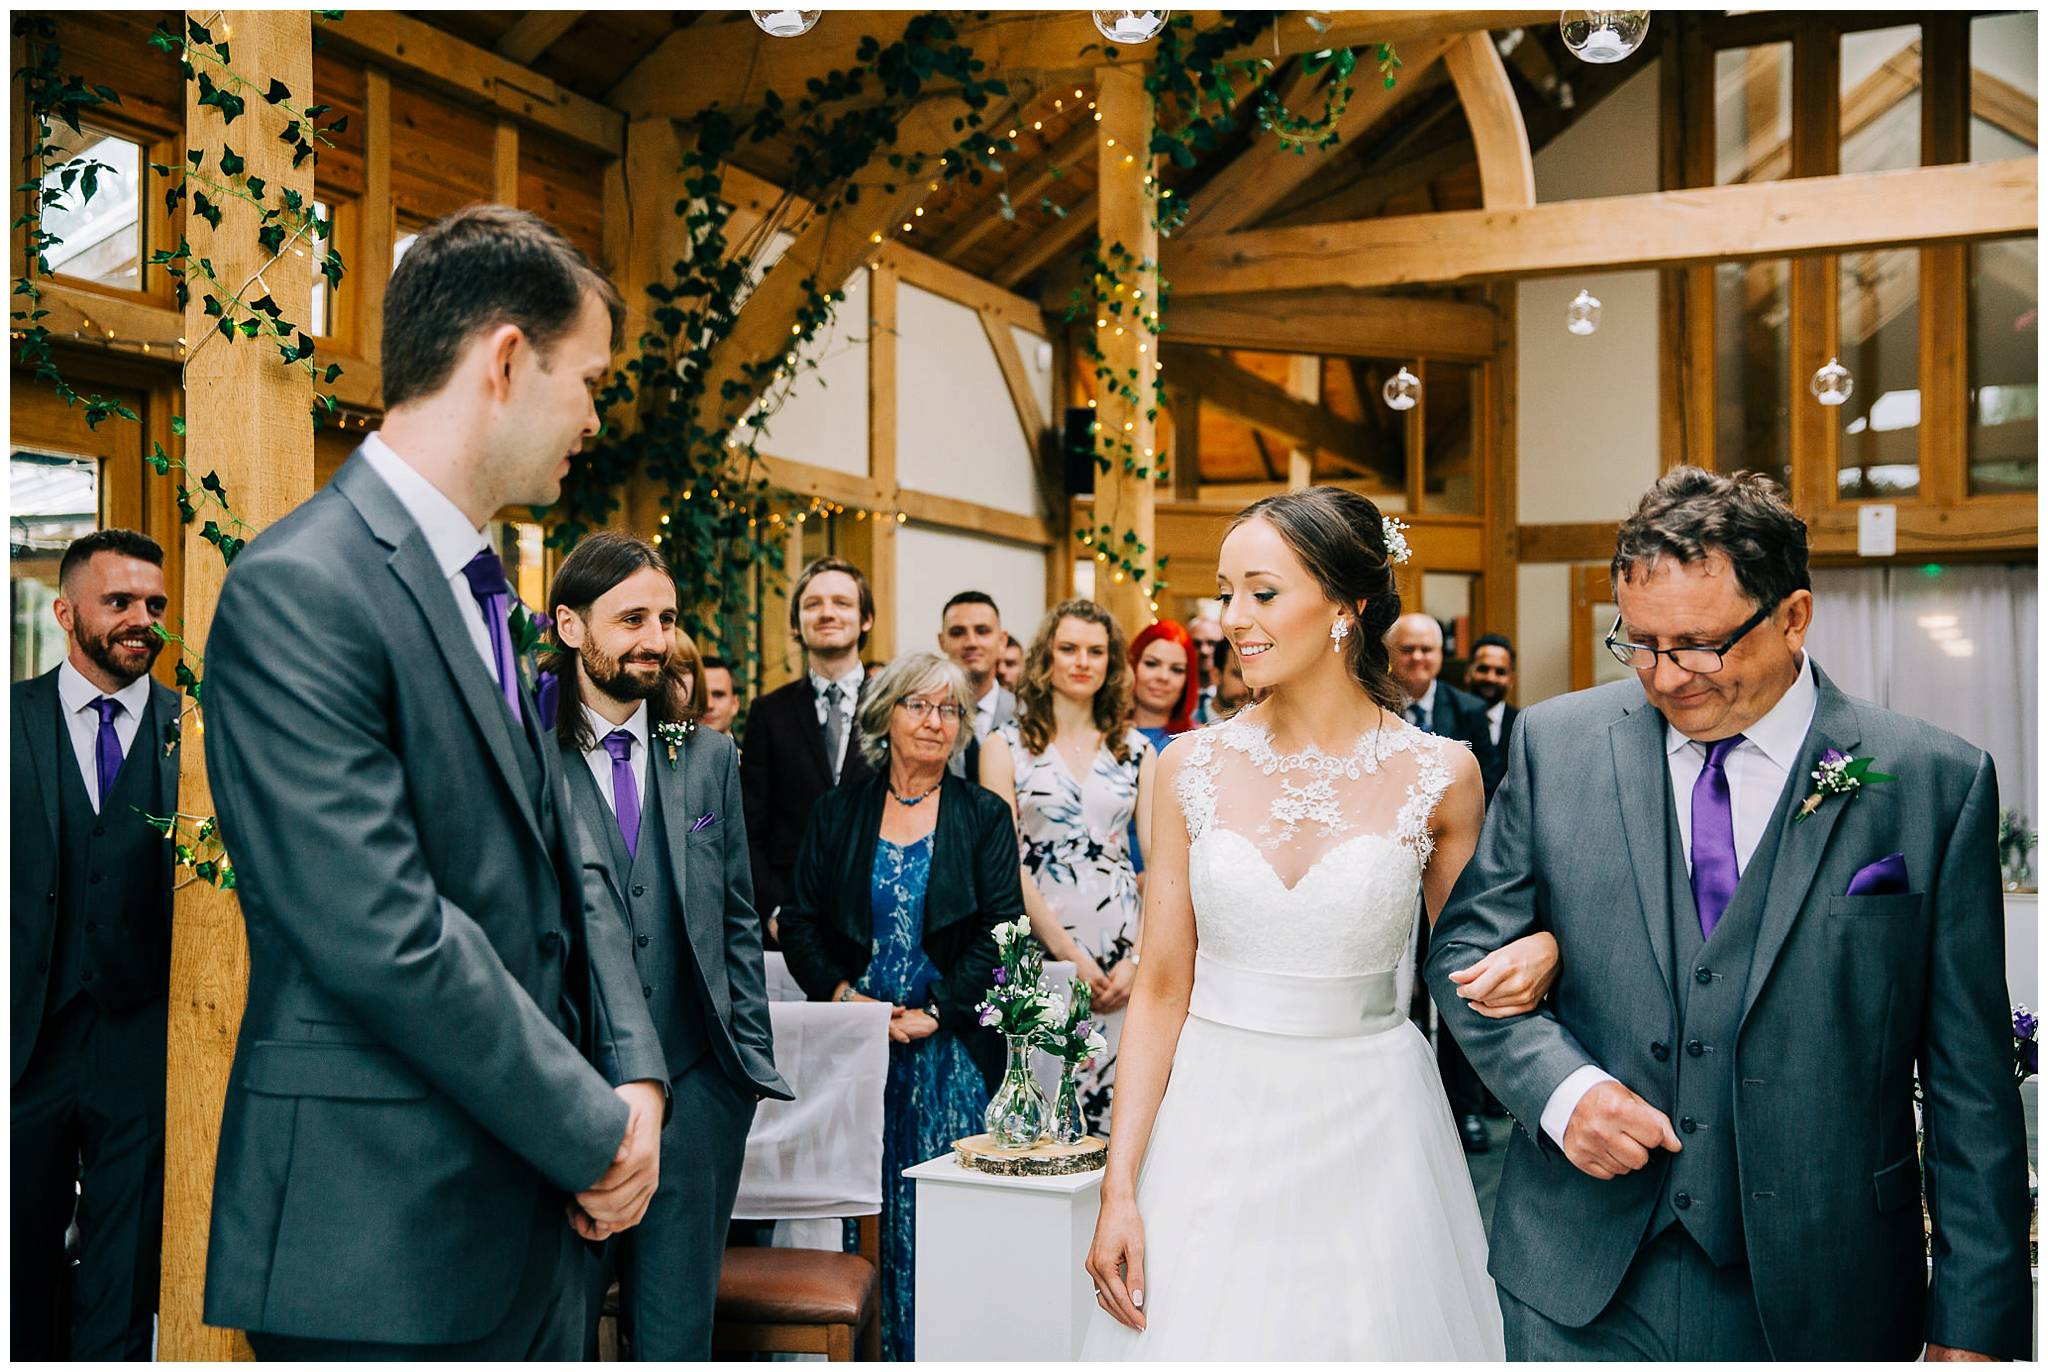 The Oak Tree at Peover - Cheshire Wedding Photographer-40.jpg